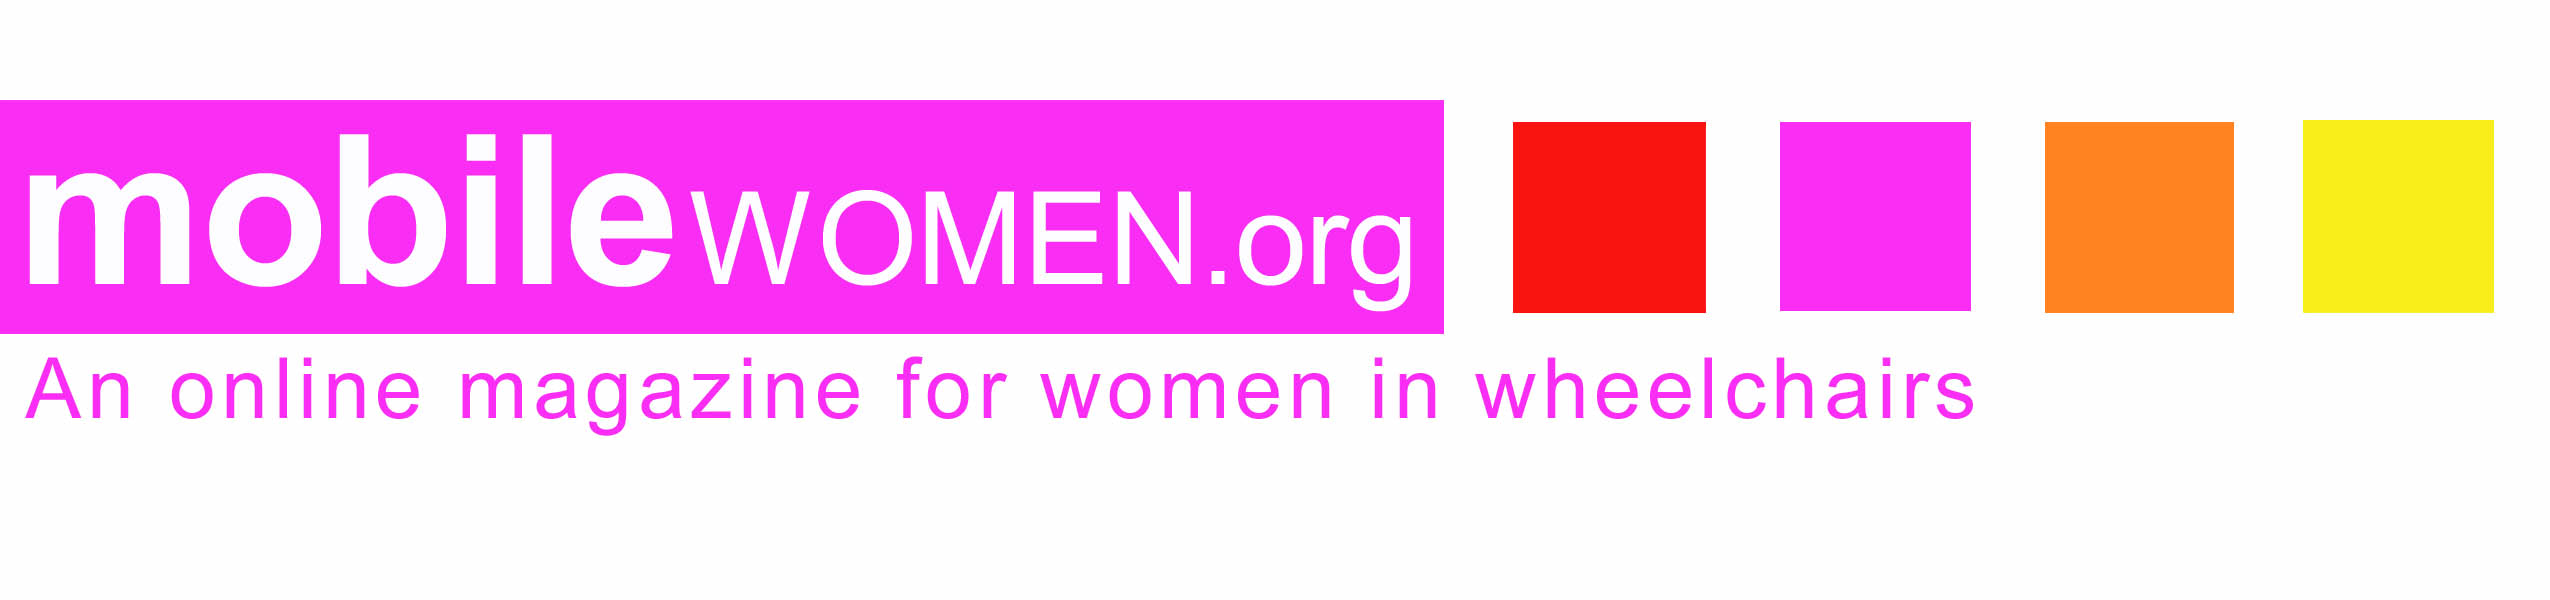 Mobile Women.org logo will open their website in new tab